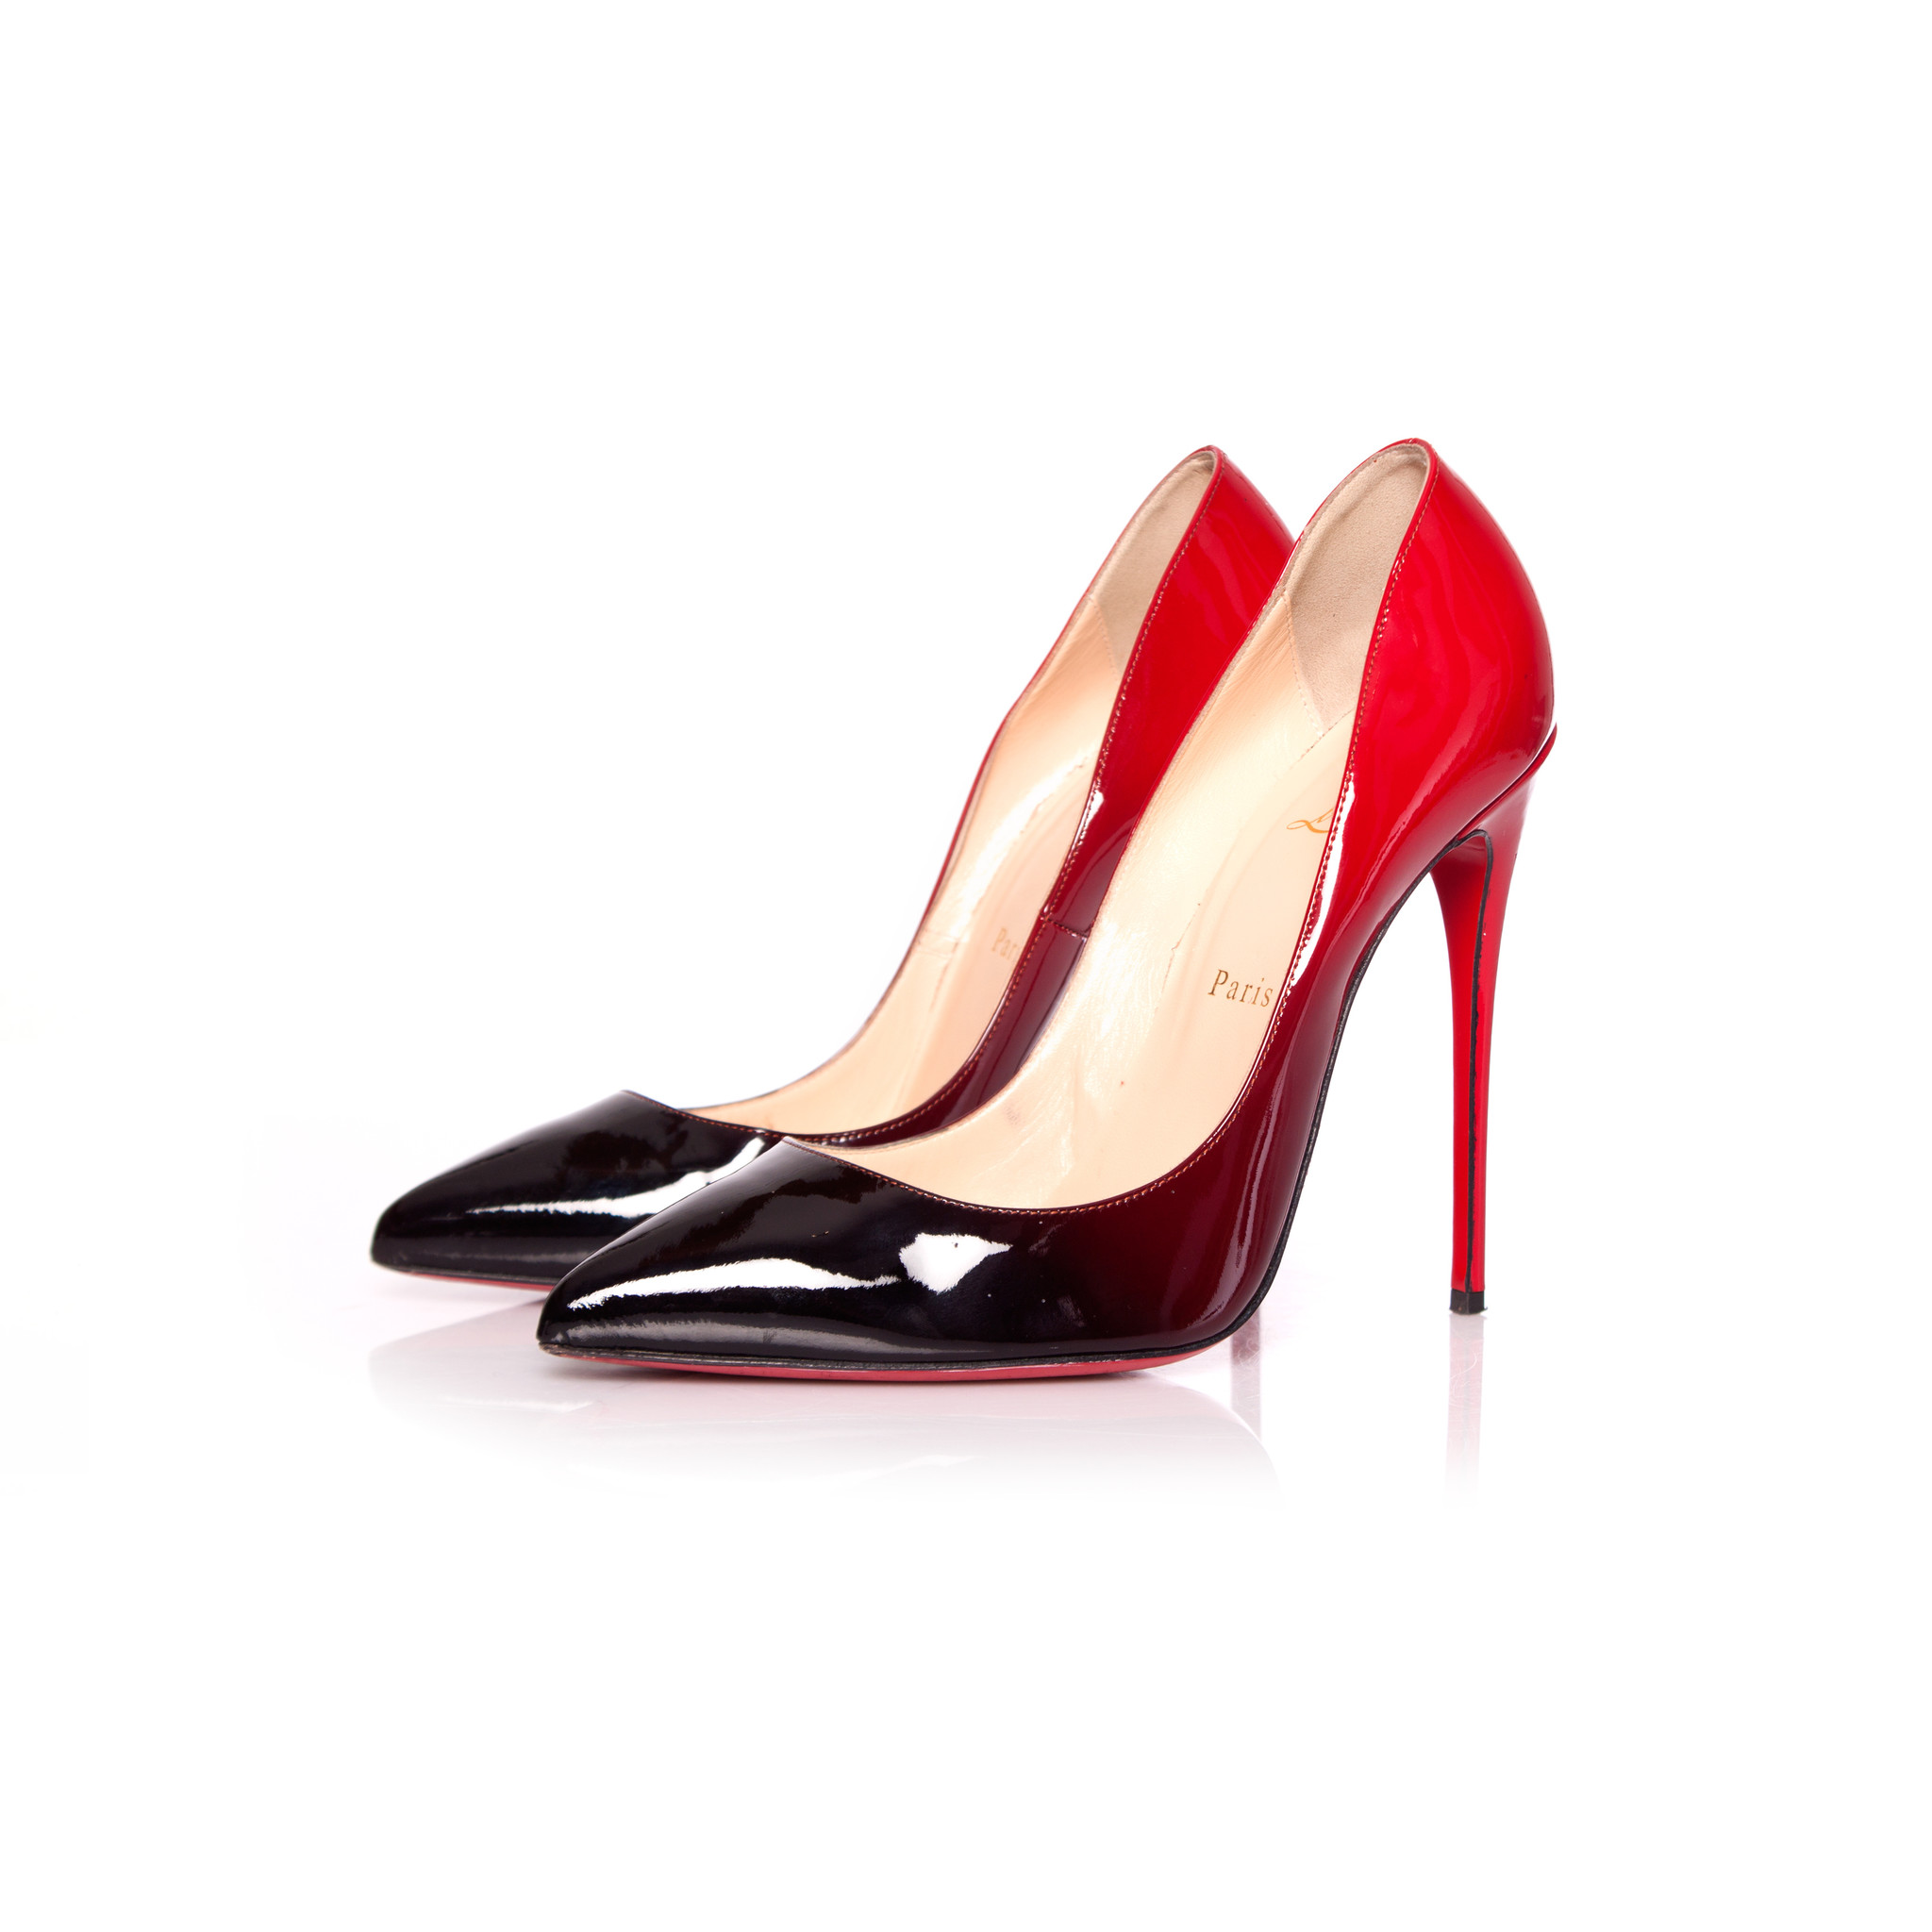 best service abf68 eff04 Christian Louboutin, Patent Leather 'Pigalle Follies 100' Degrade Pumps in  Black/Red in size 40.